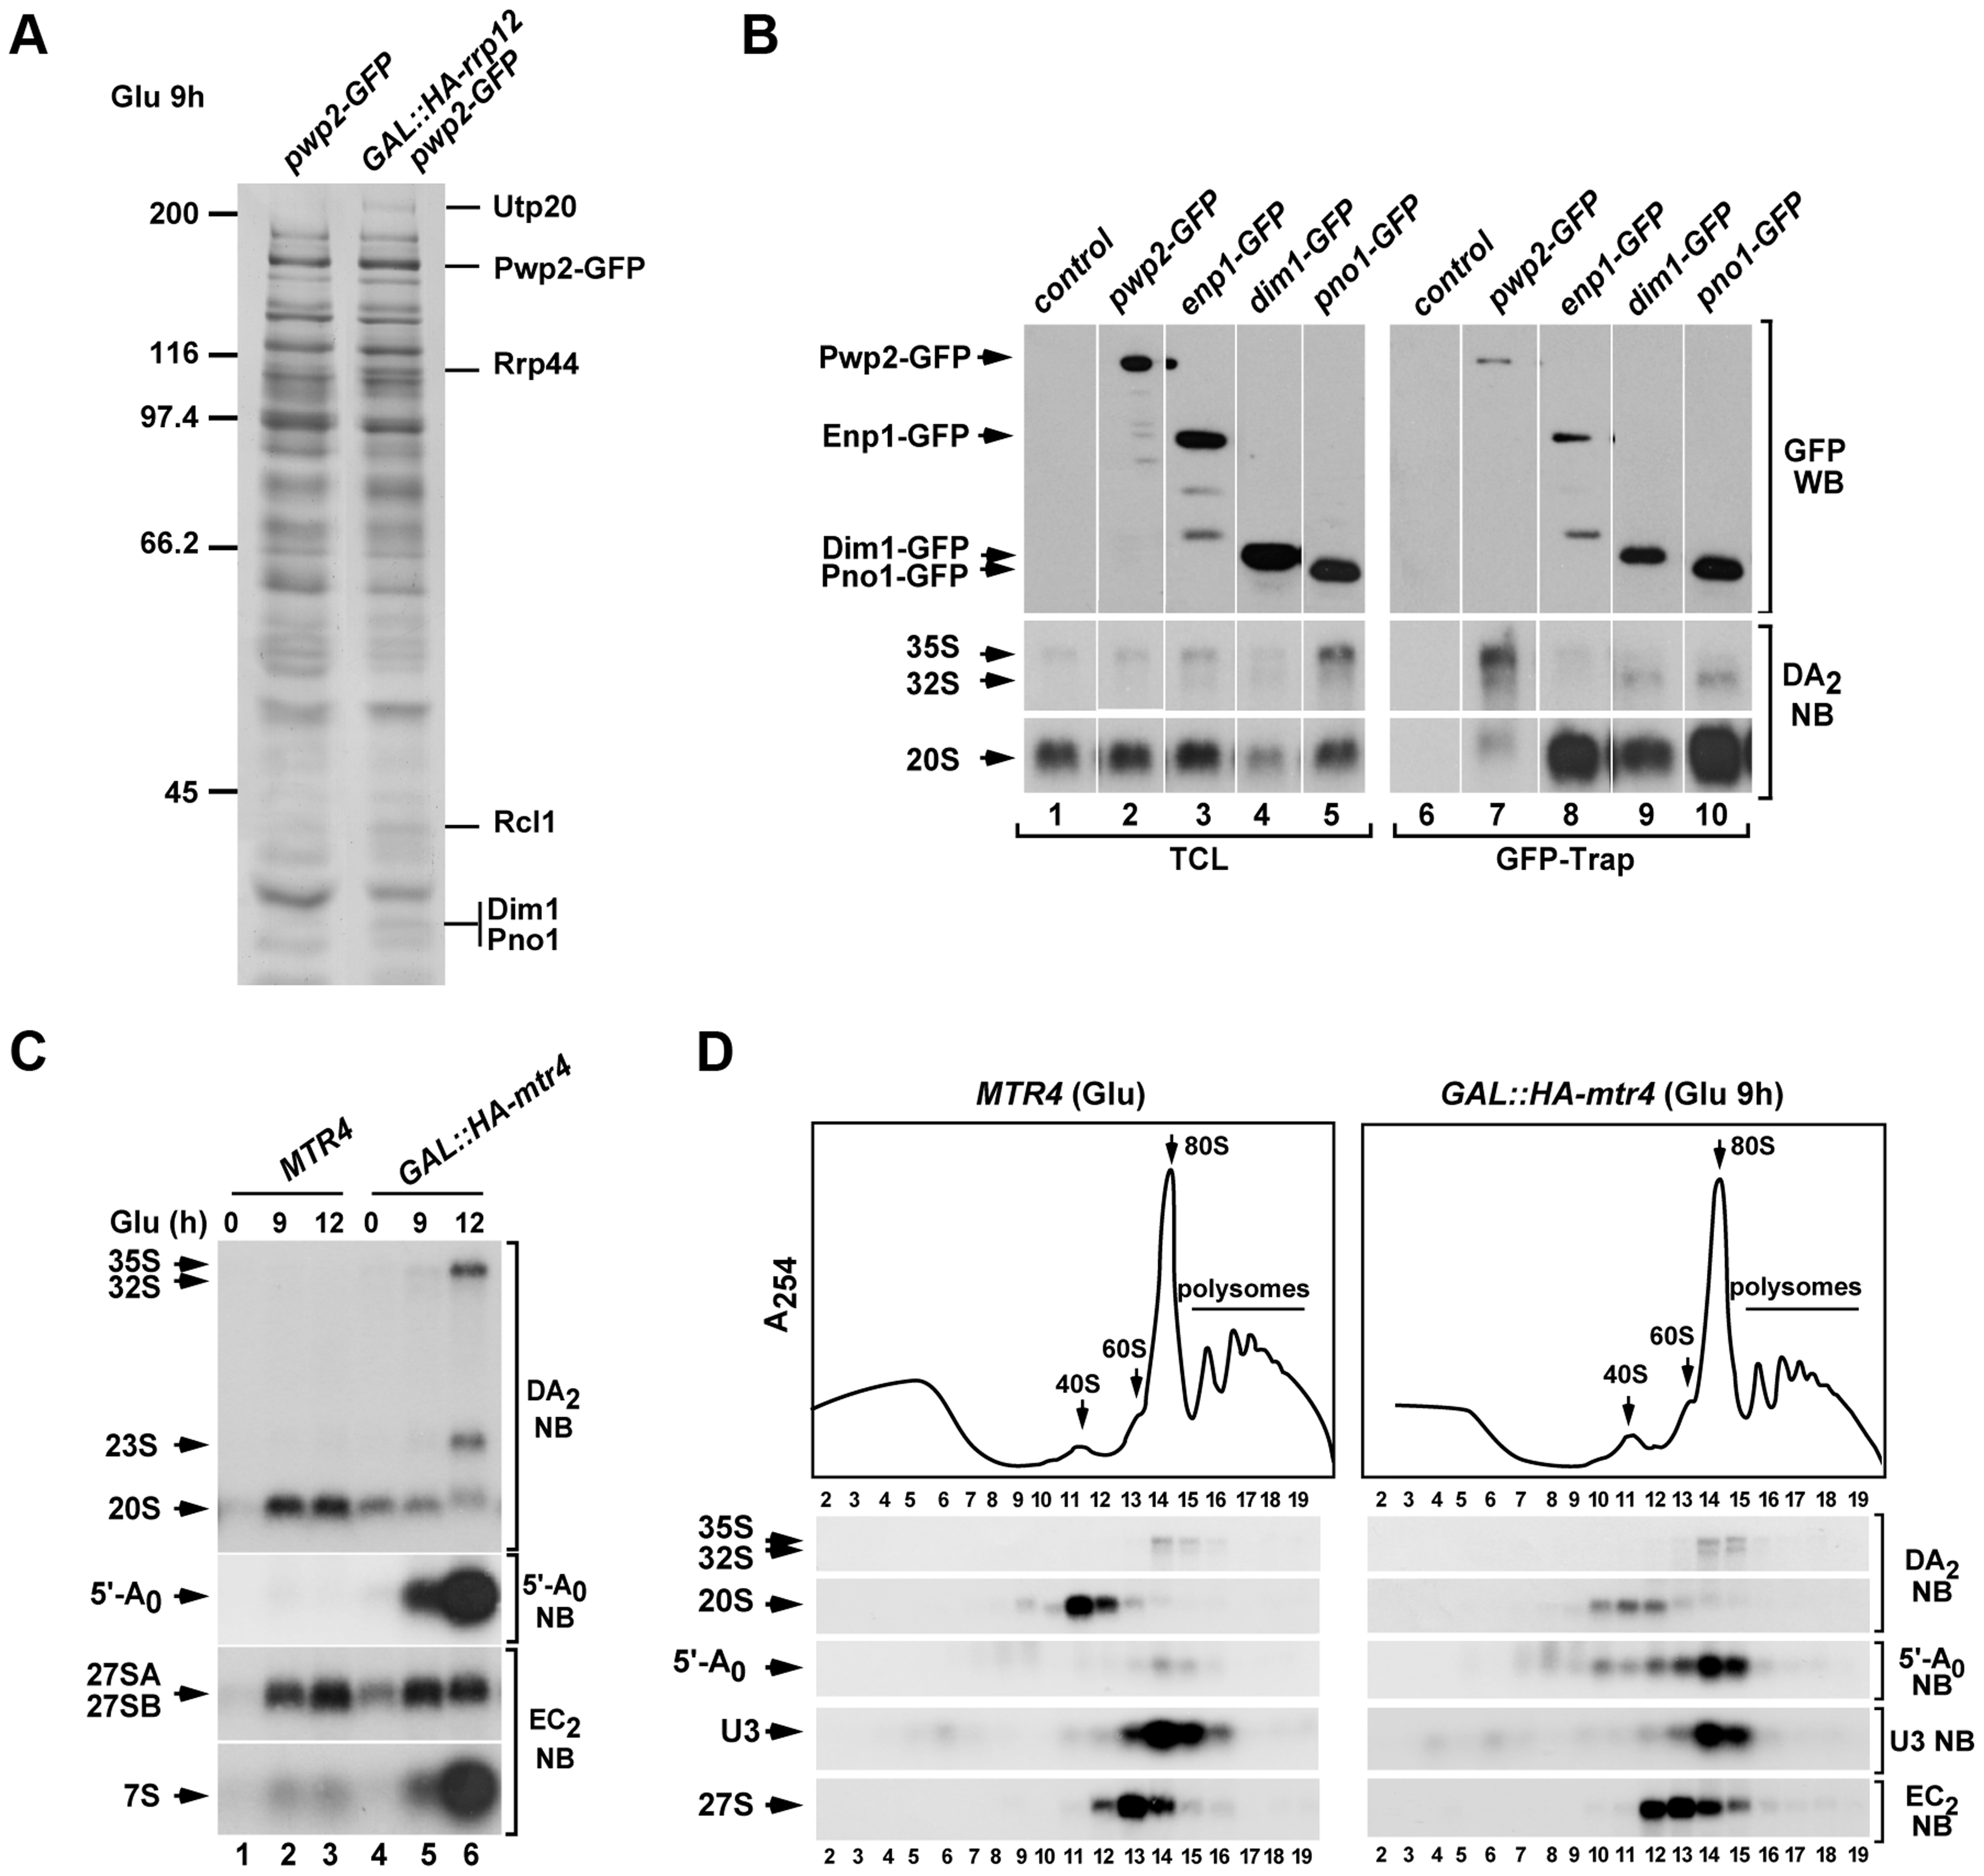 Rrp12 is required at a 90S particle-mediated maturation step that precedes exosome action.